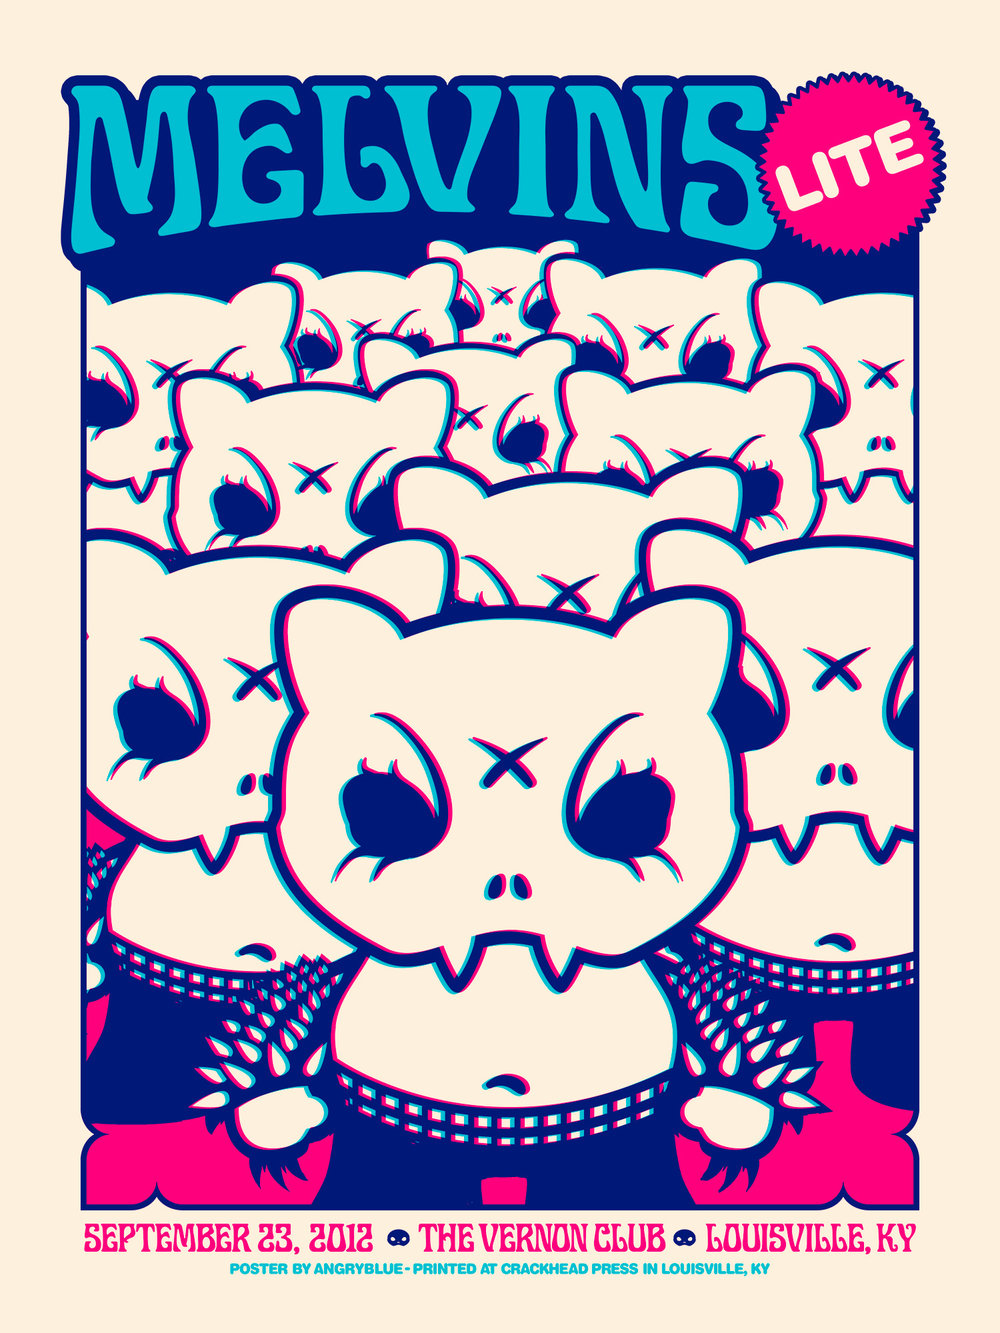 Melvins poster designed by Angryblue.